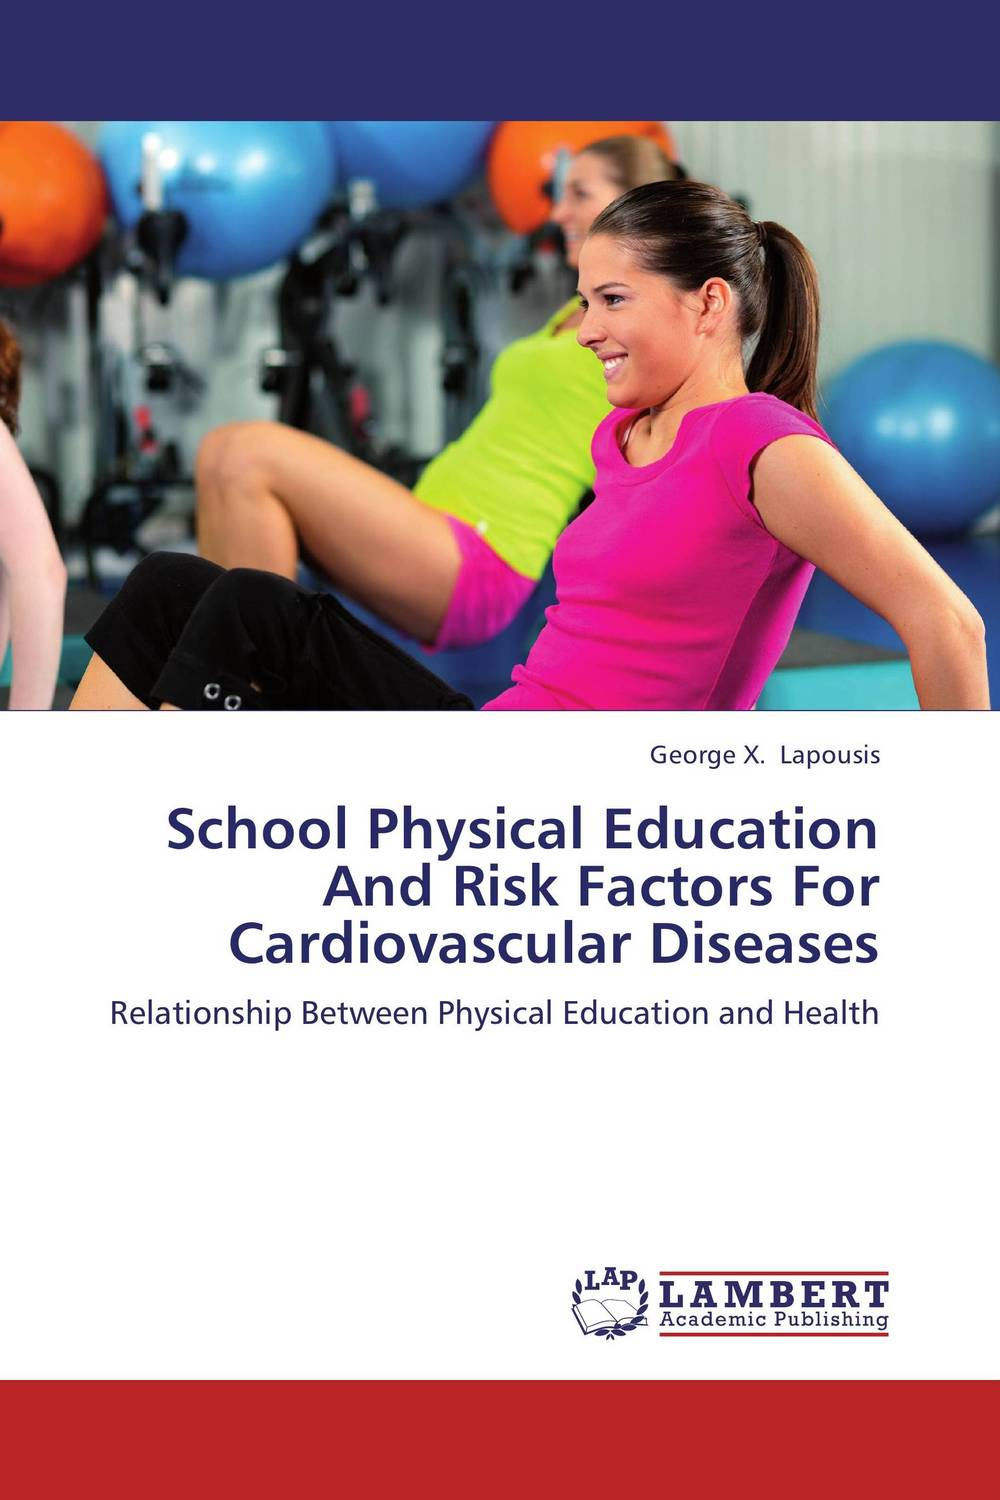 School Physical Education And Risk Factors For Cardiovascular Diseases a prospective insight copd as potential risk factor for cvs disease